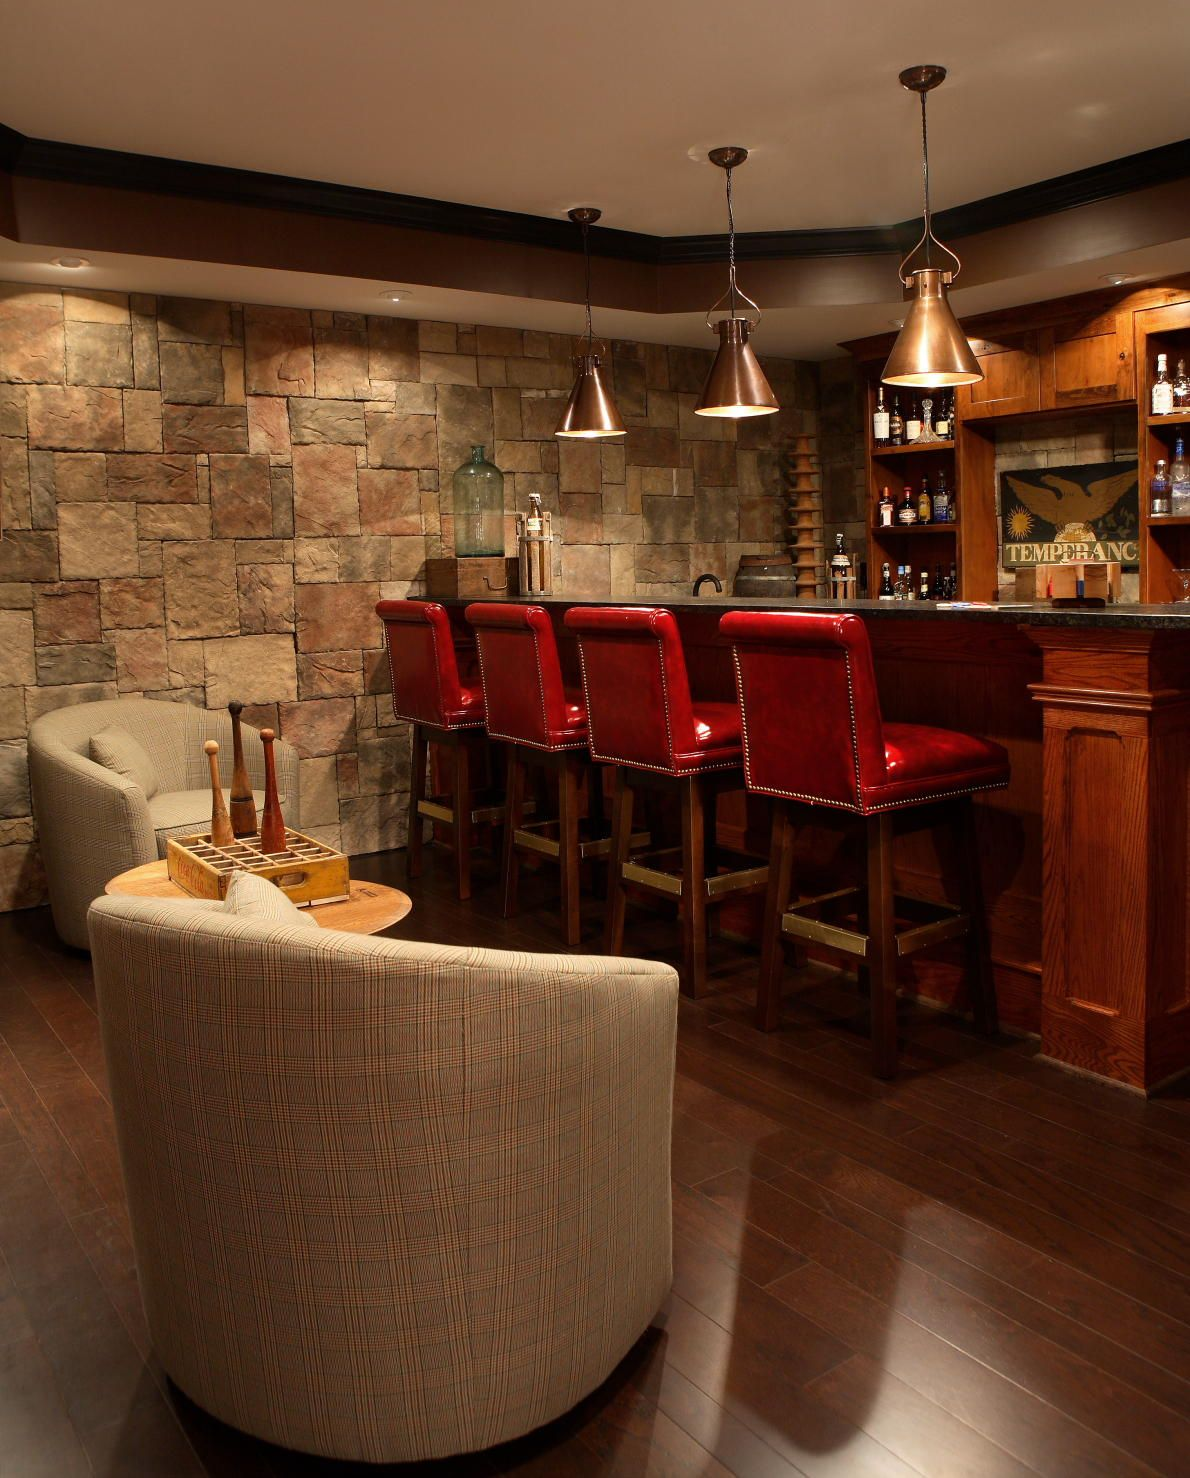 Basement Decorating Ideas For Men: Nice Looking Basement Bar. I Also Love The Stone, Would